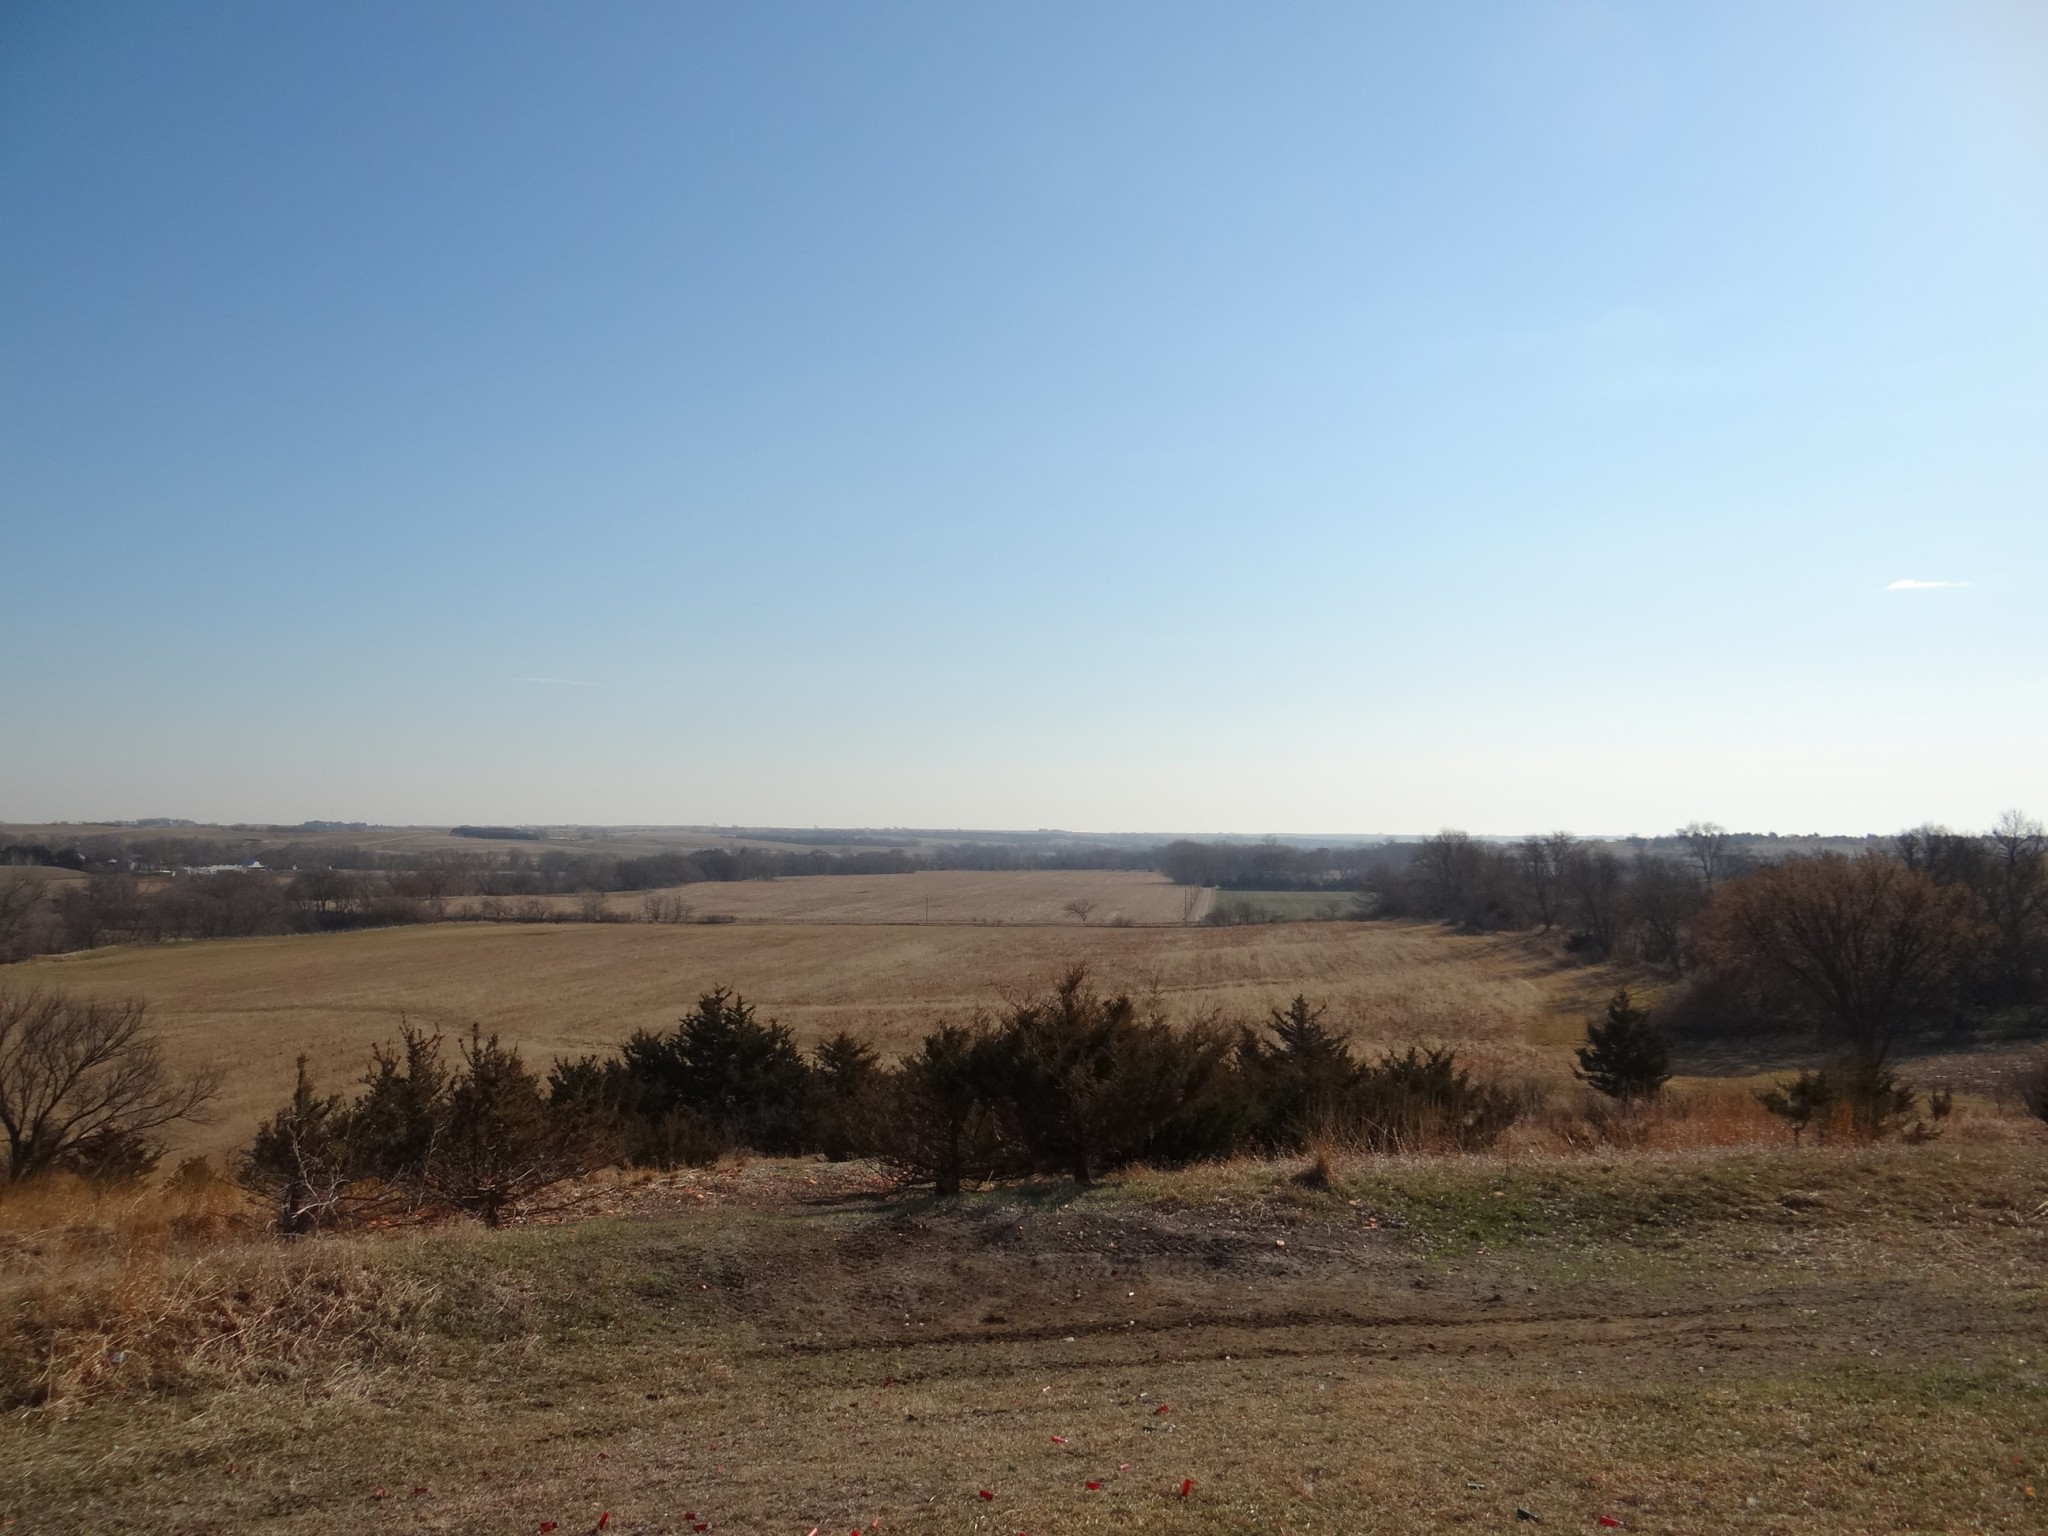 View of countryside from Oak Creek Sporting Club near Brainard, NE. Photo by Greg Wagner.